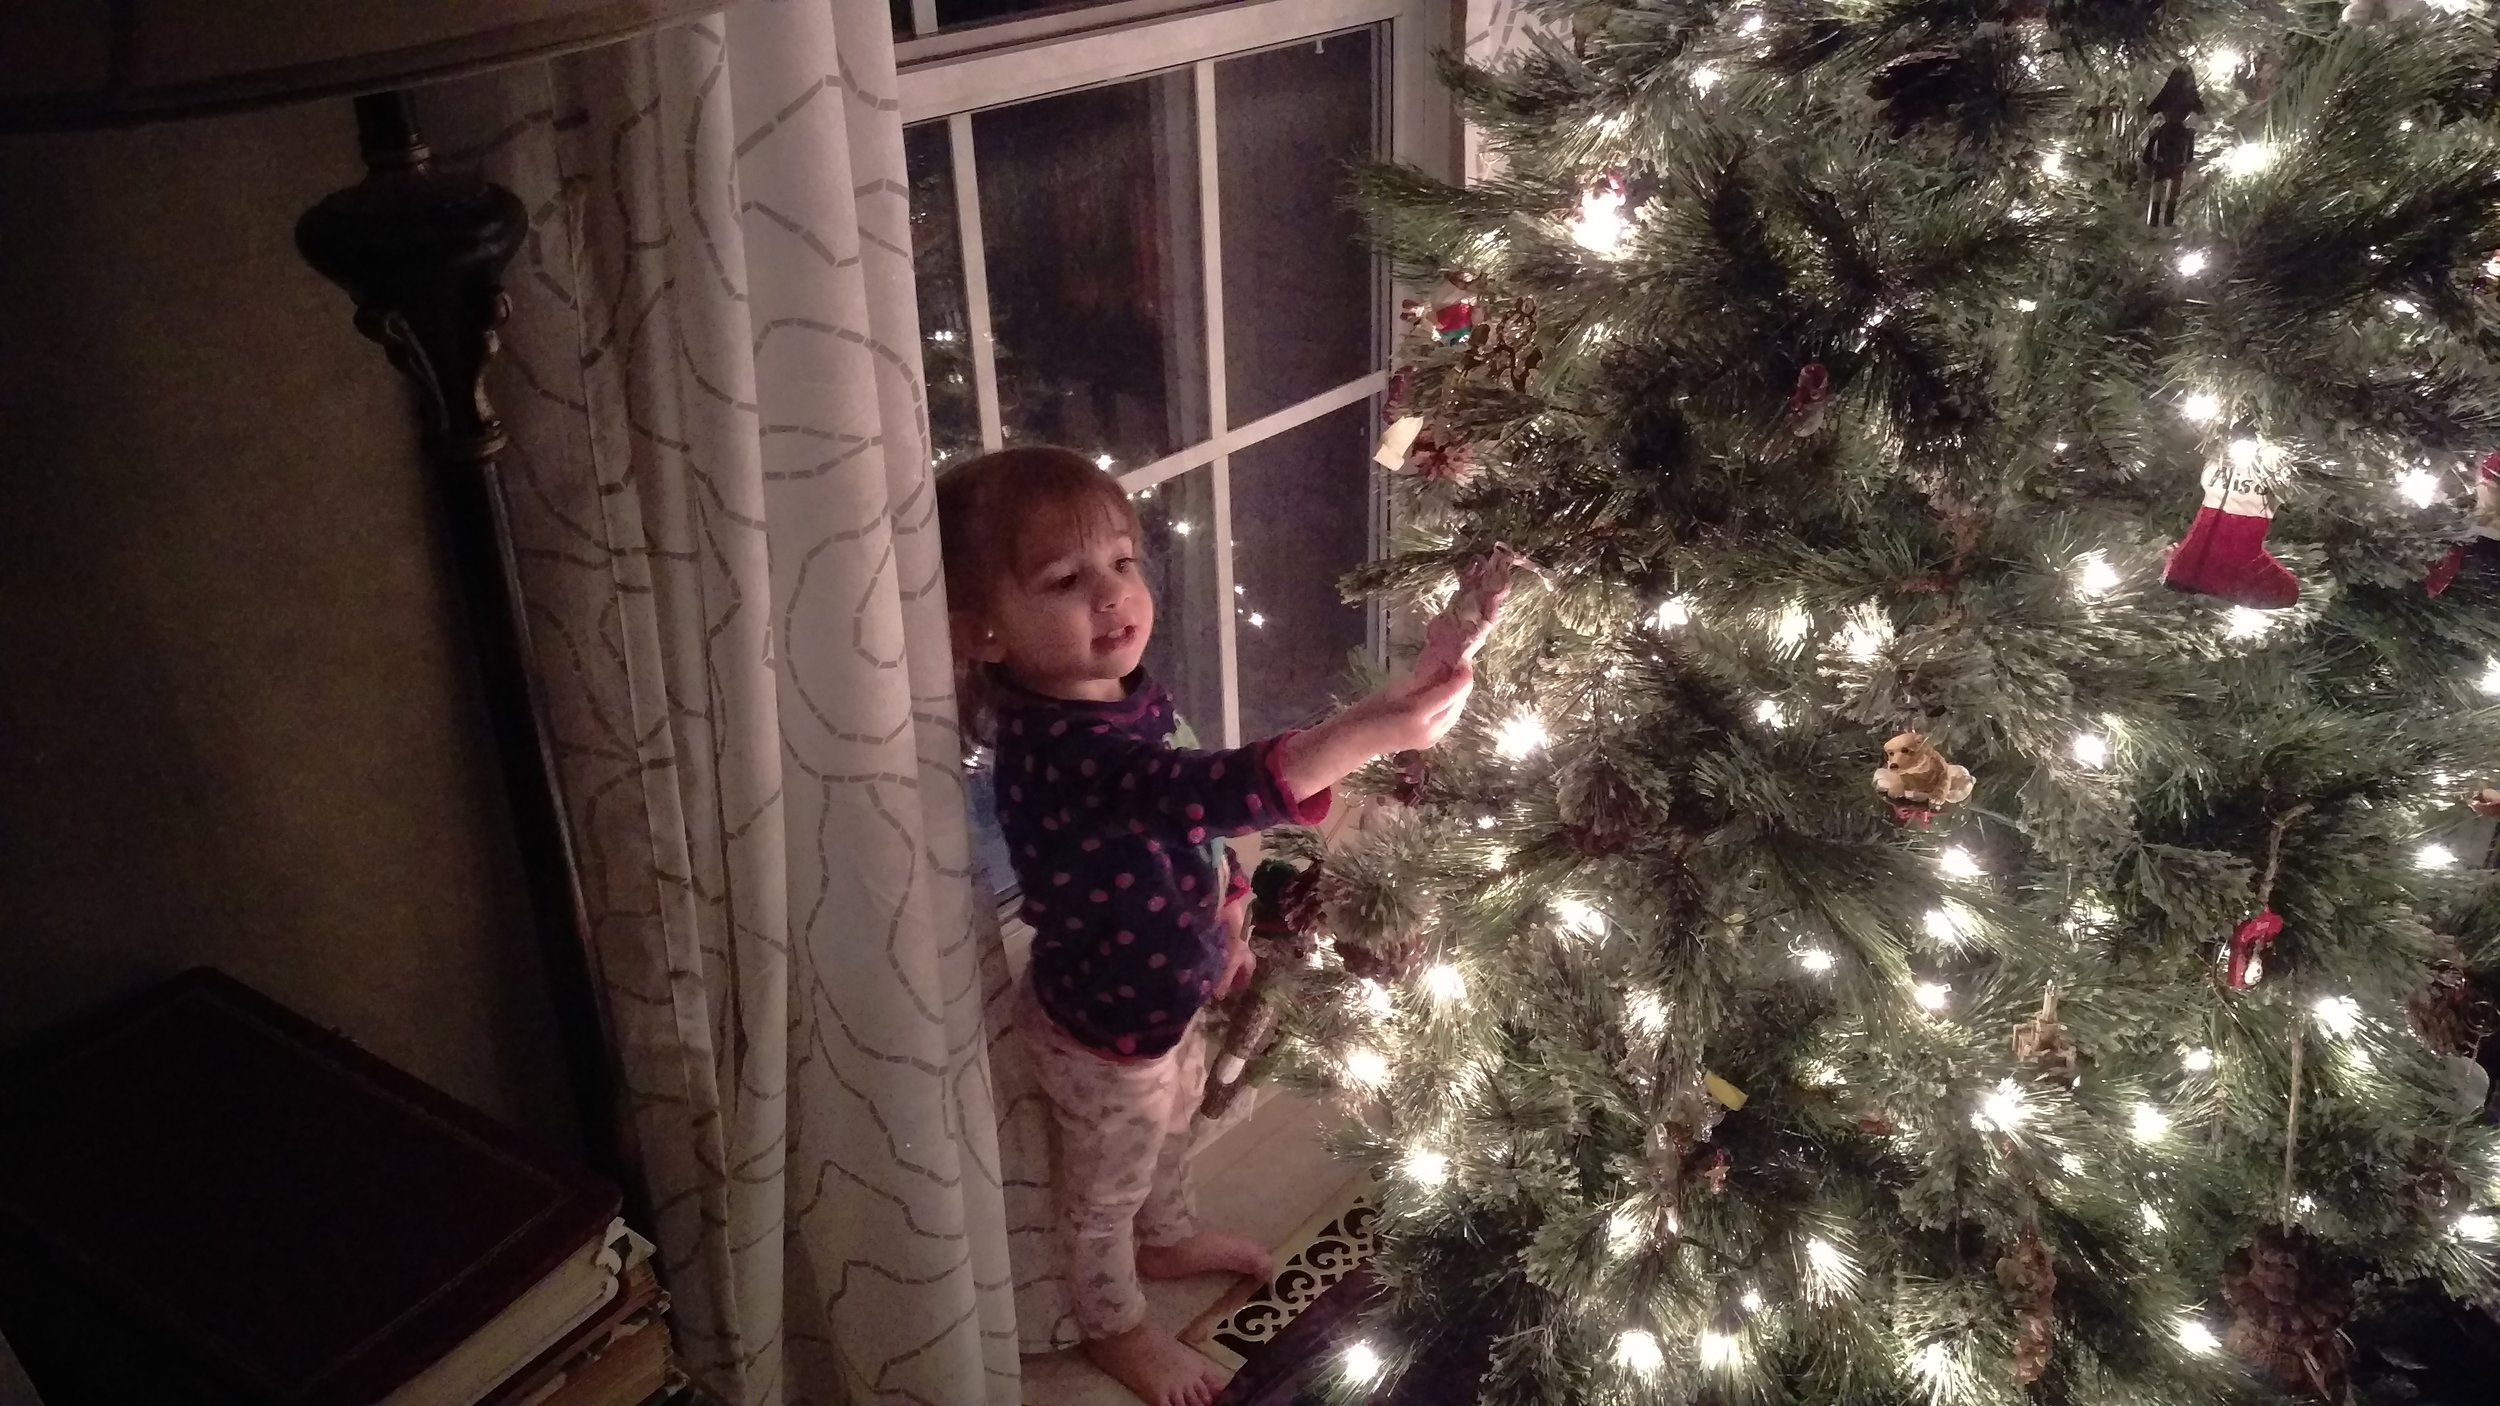 Cece is getting excited for Santa to visit.